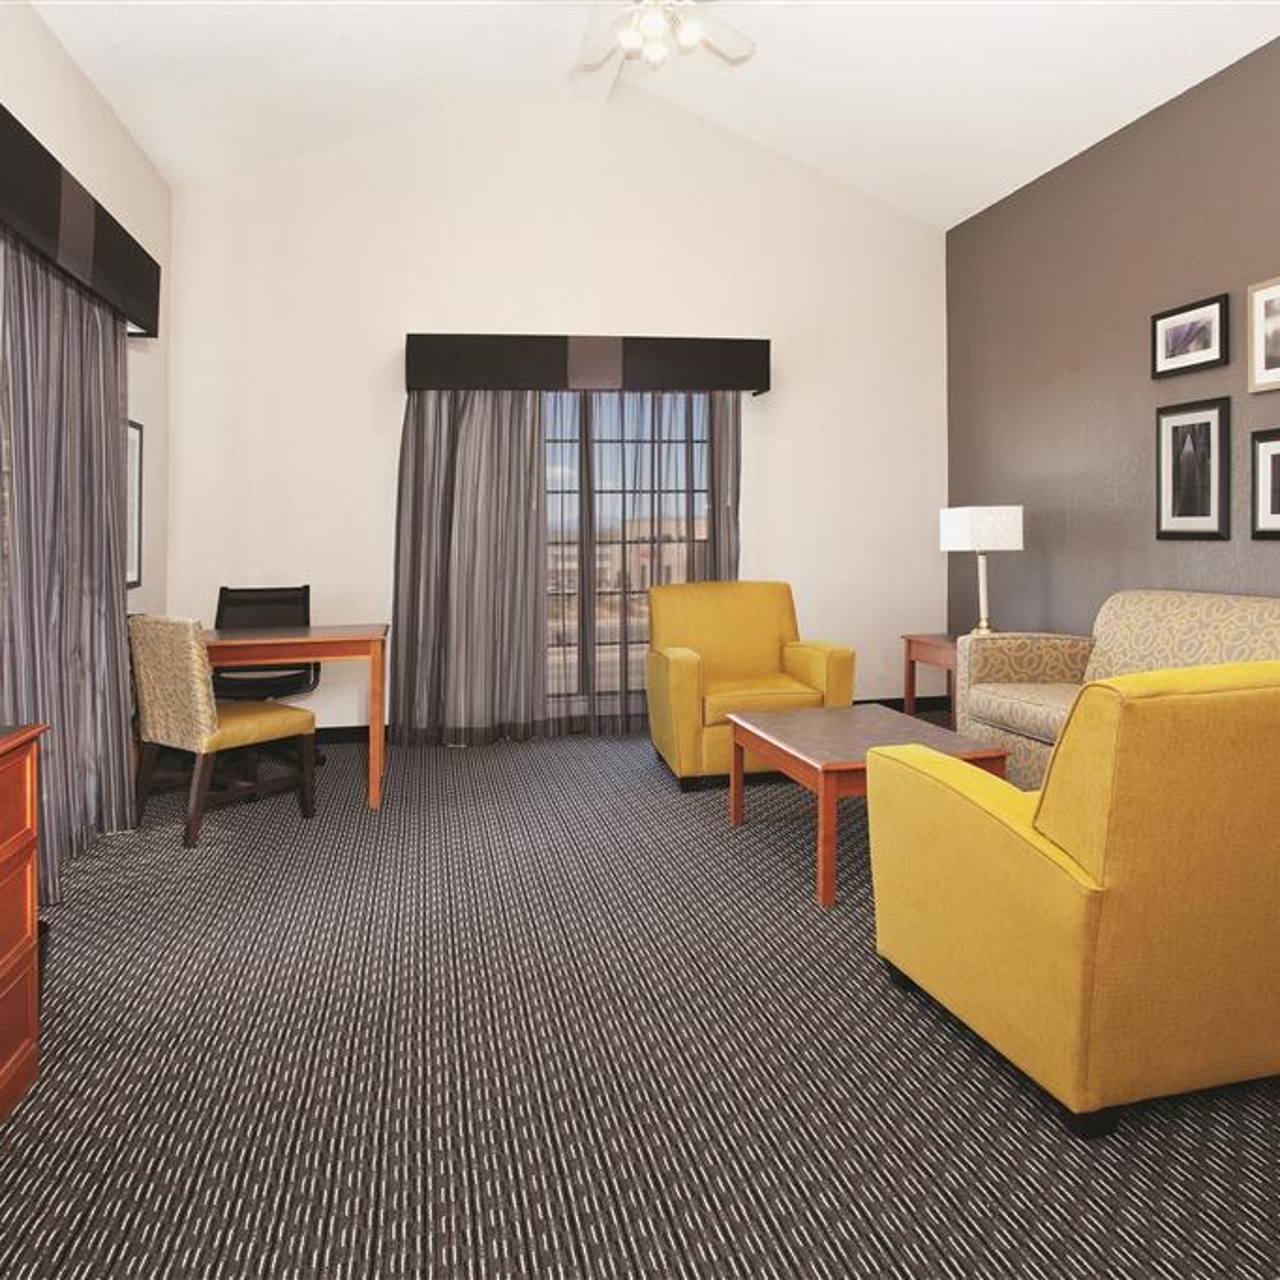 la quinta inn santa fe 3 hrs star hotel in santa fe new mexico hrs com